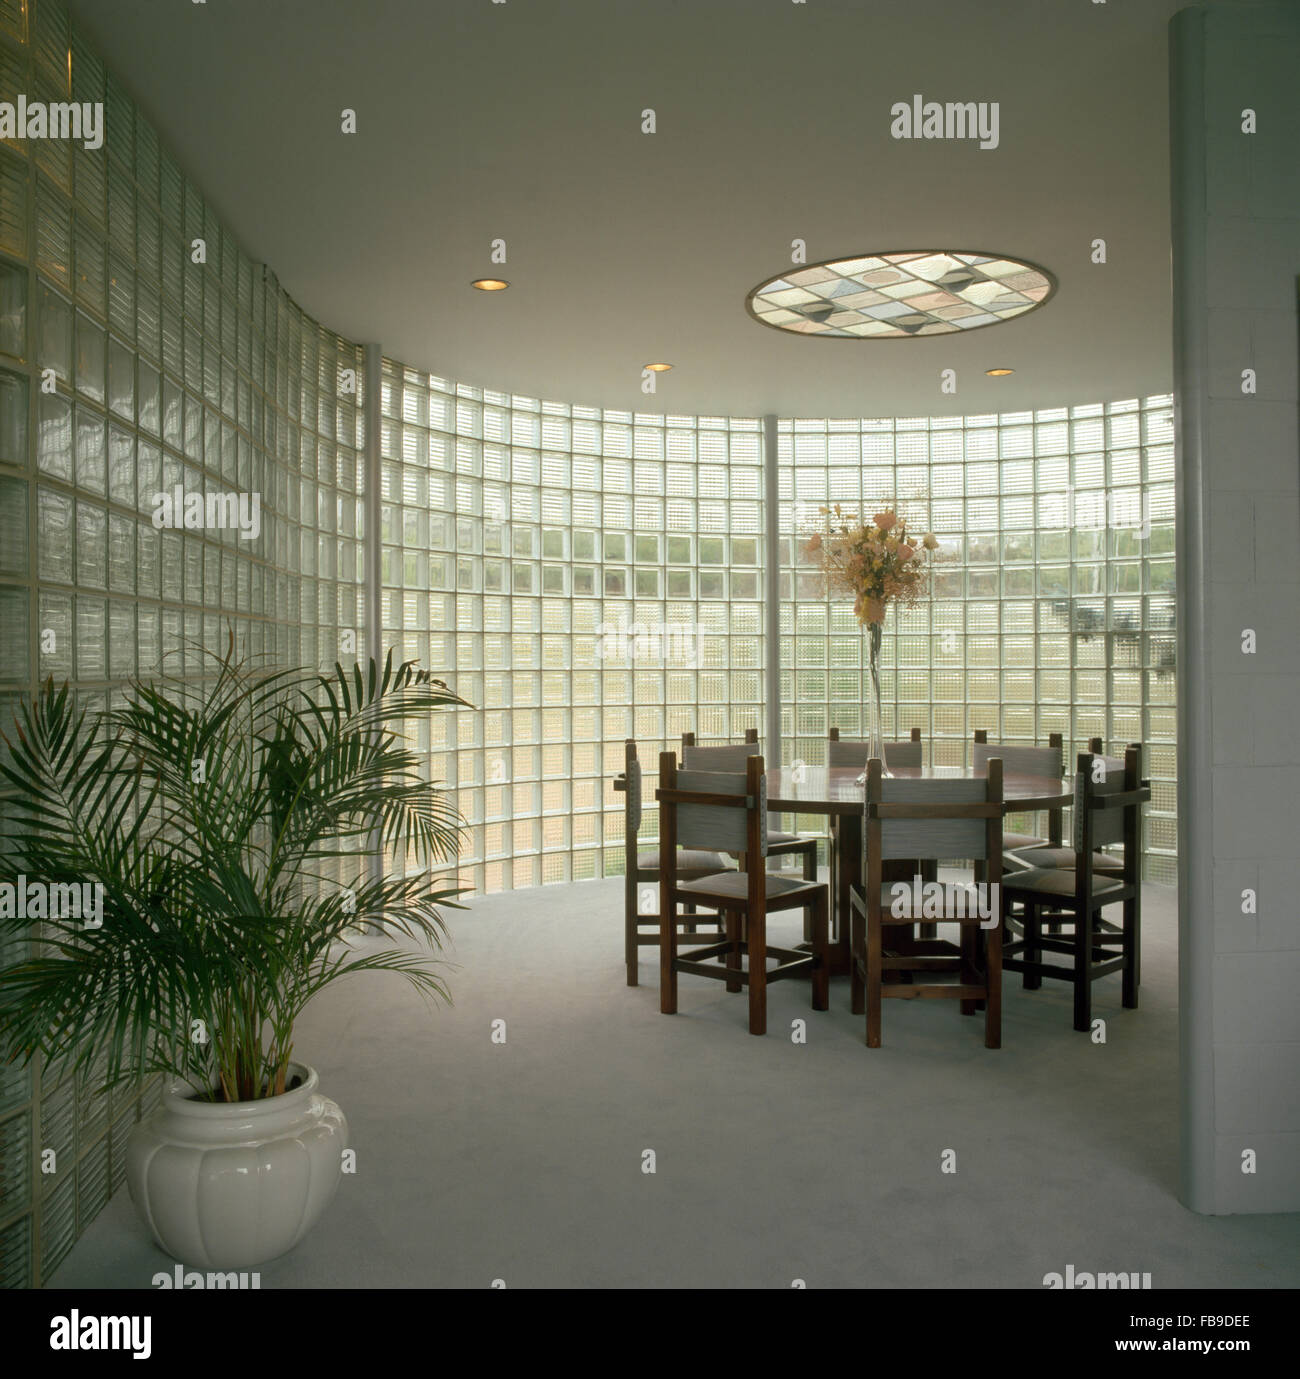 Potted palm and gray carpet in a curved dining room with a glass brick wall - Stock Image